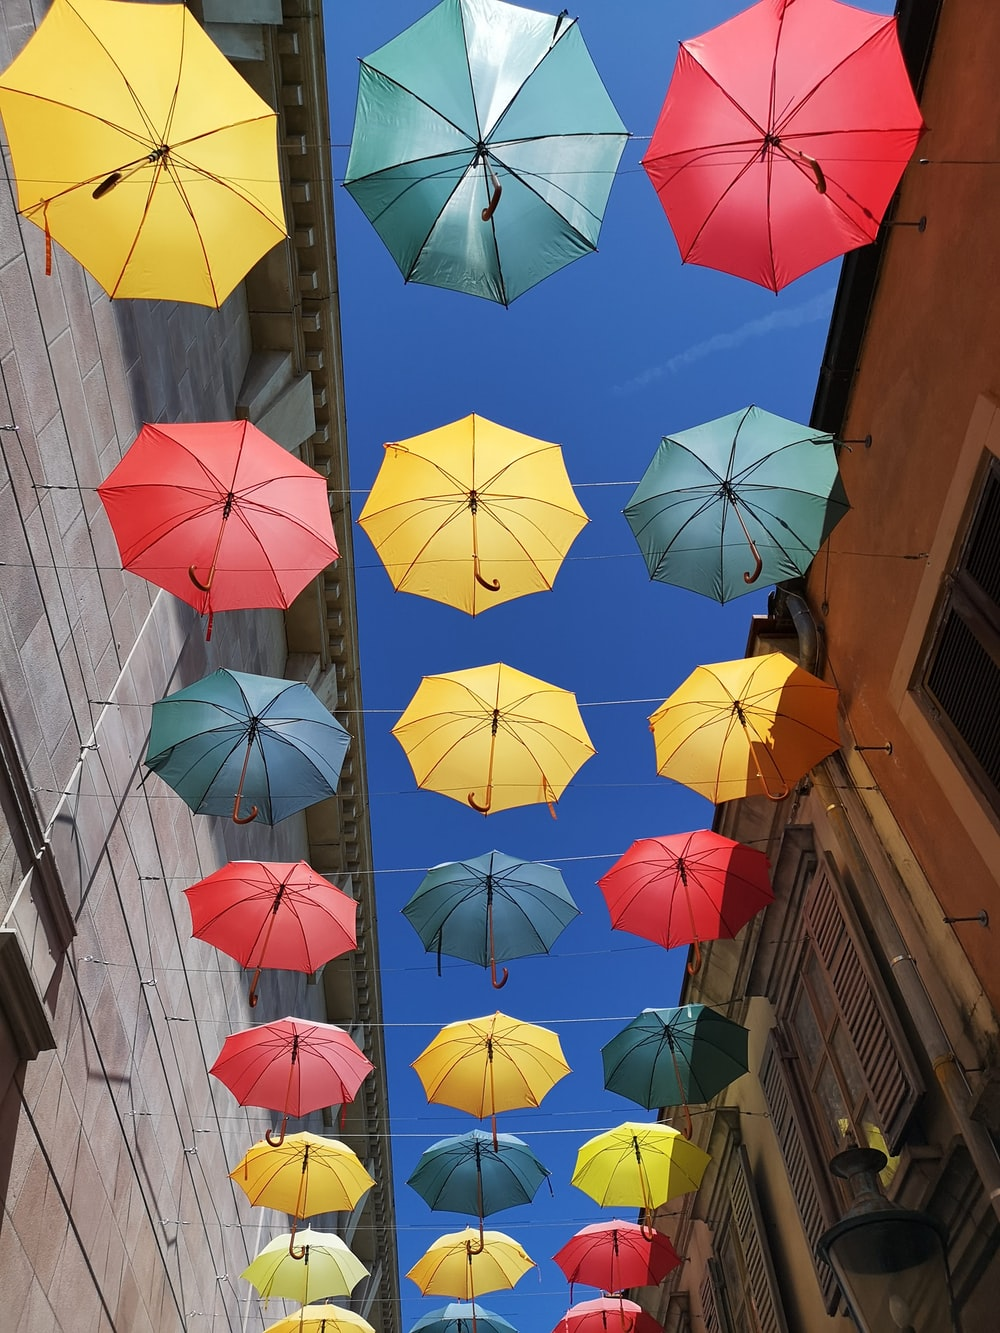 assorted-colored umbrellas hanging on strings during daytime